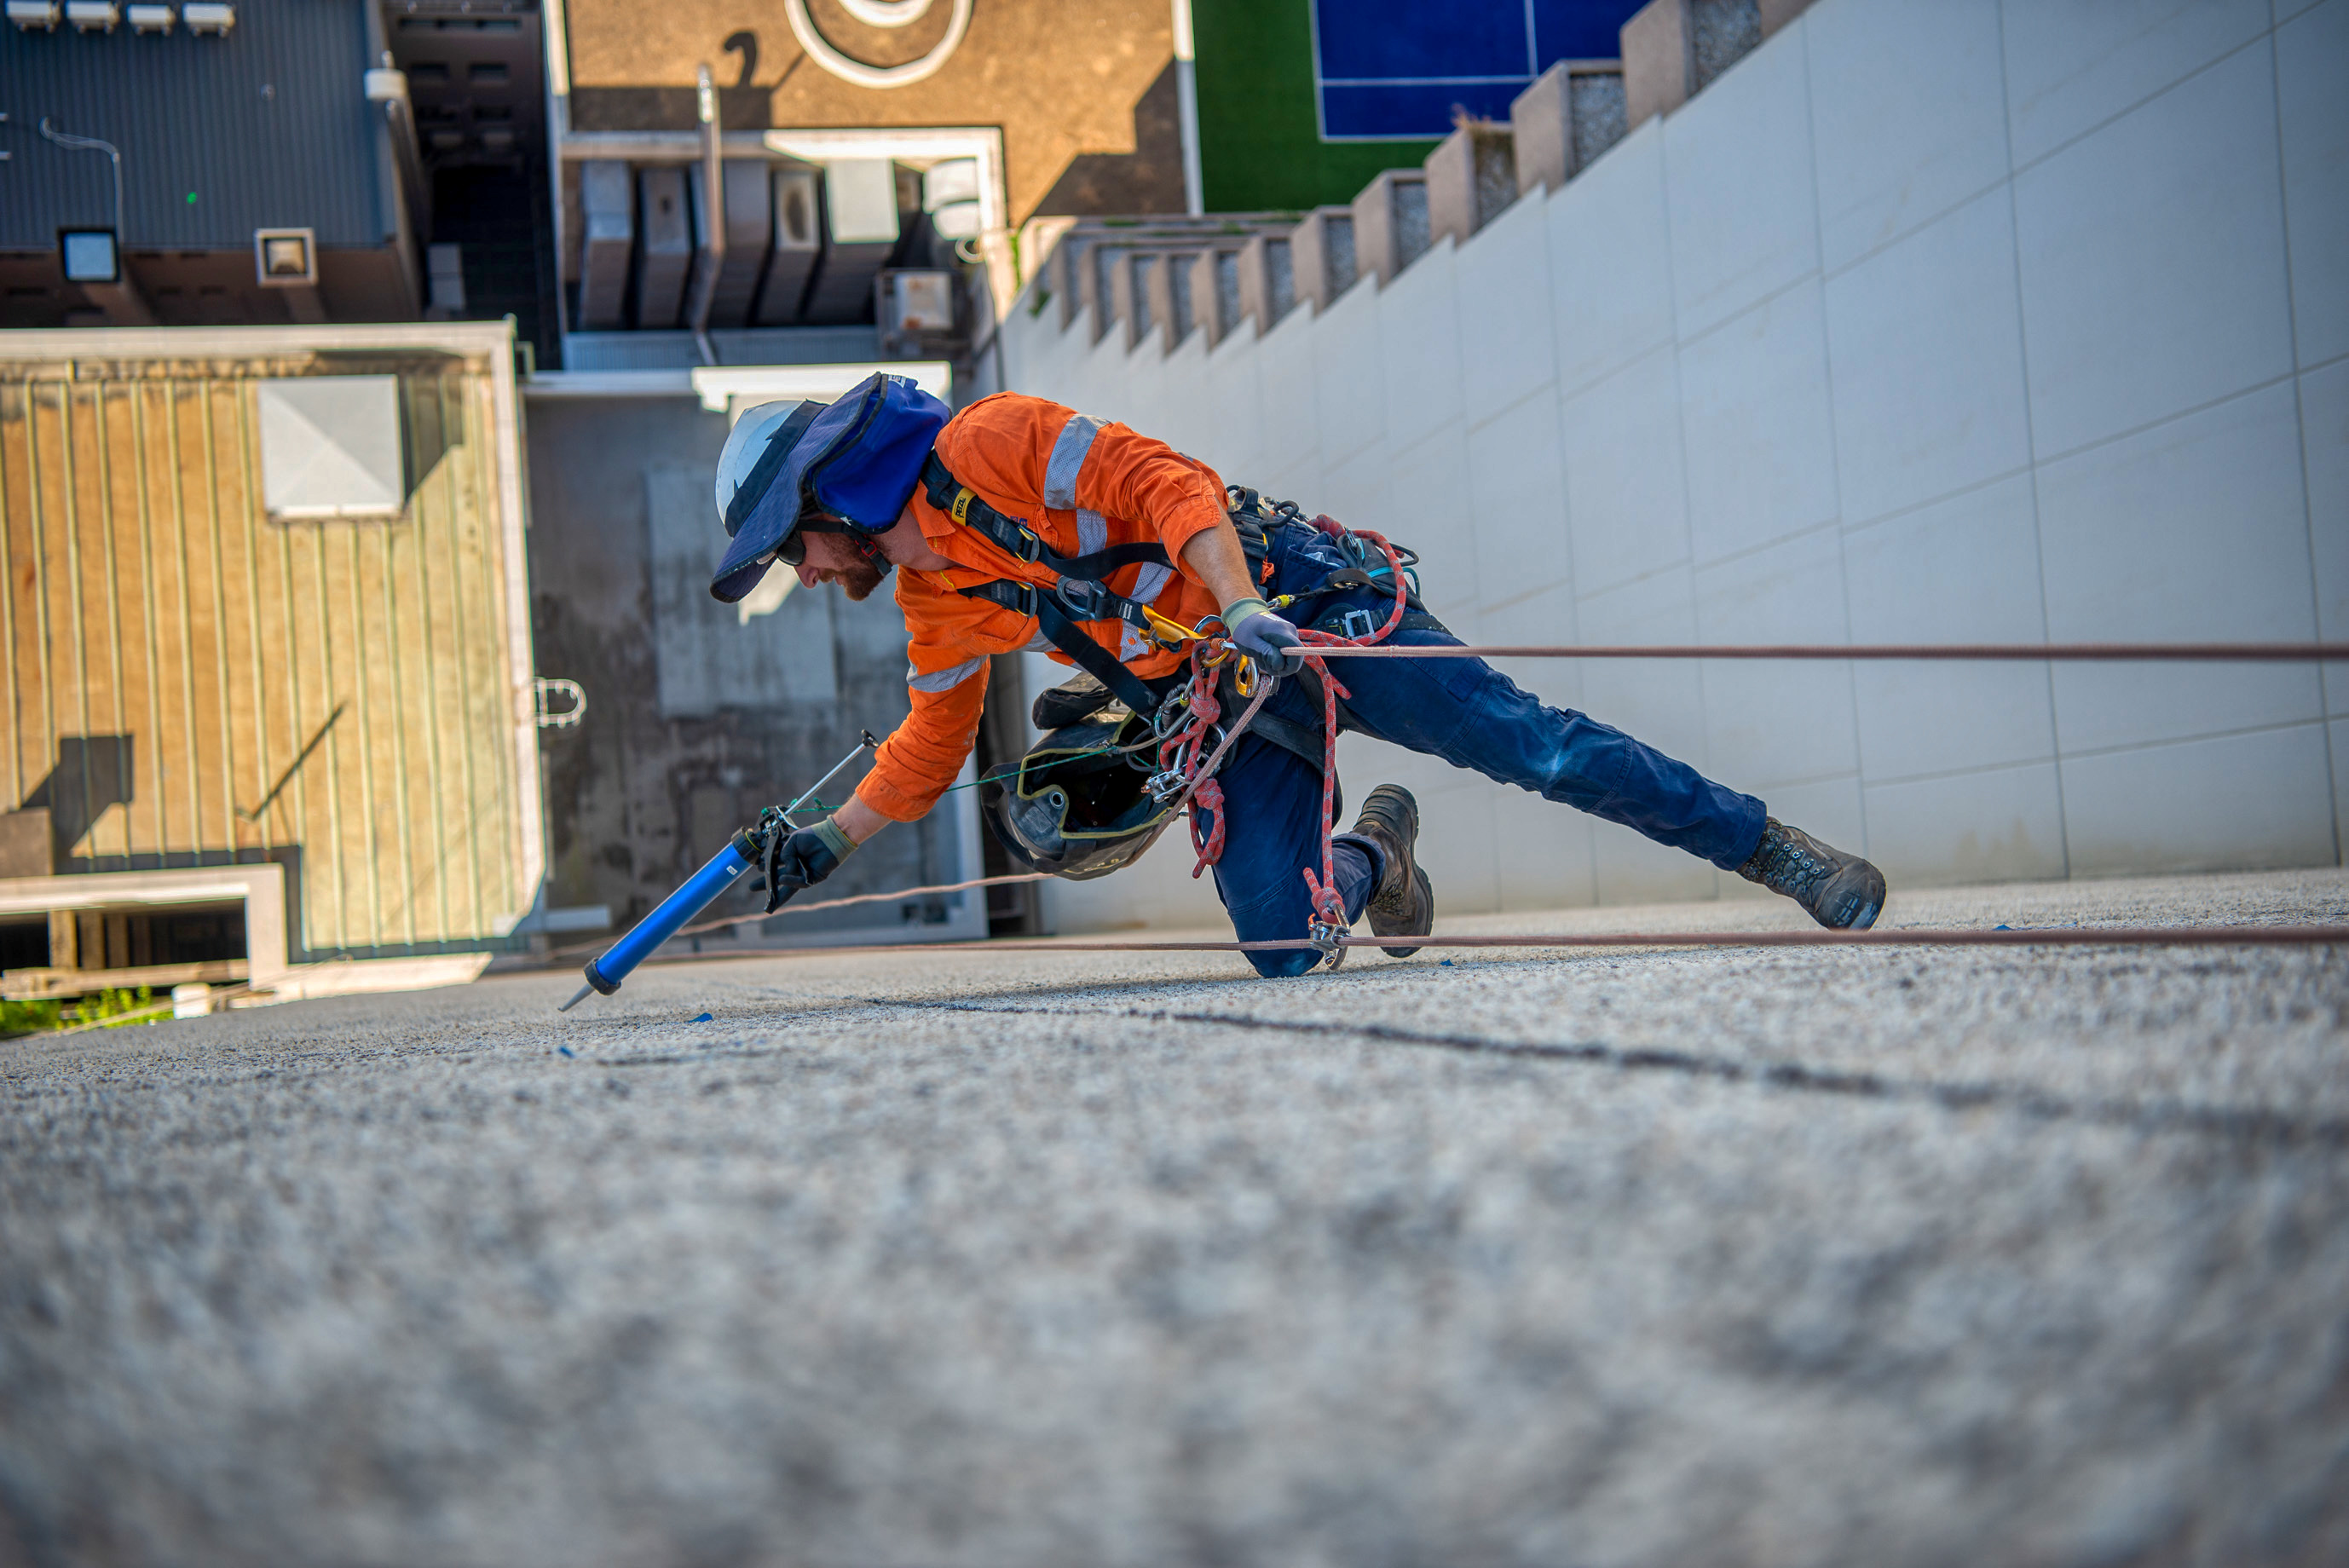 Reaching to repair the side of a high rise building and captured by Rapax Construction Photography